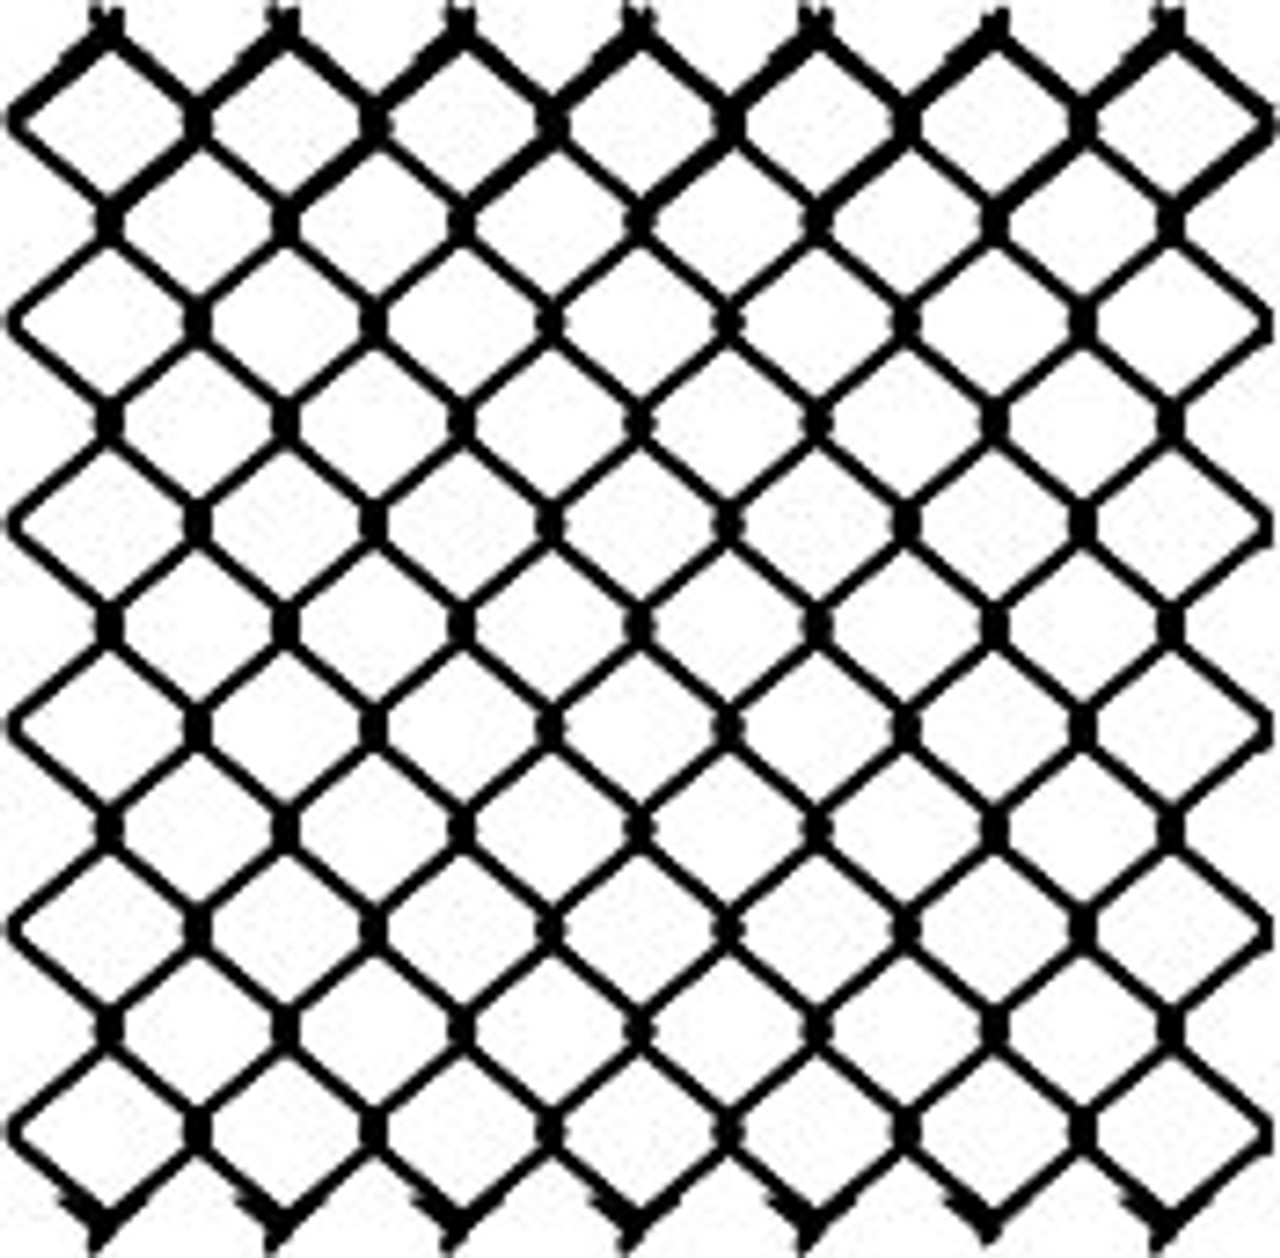 Black Chain Link Fabric Illustration